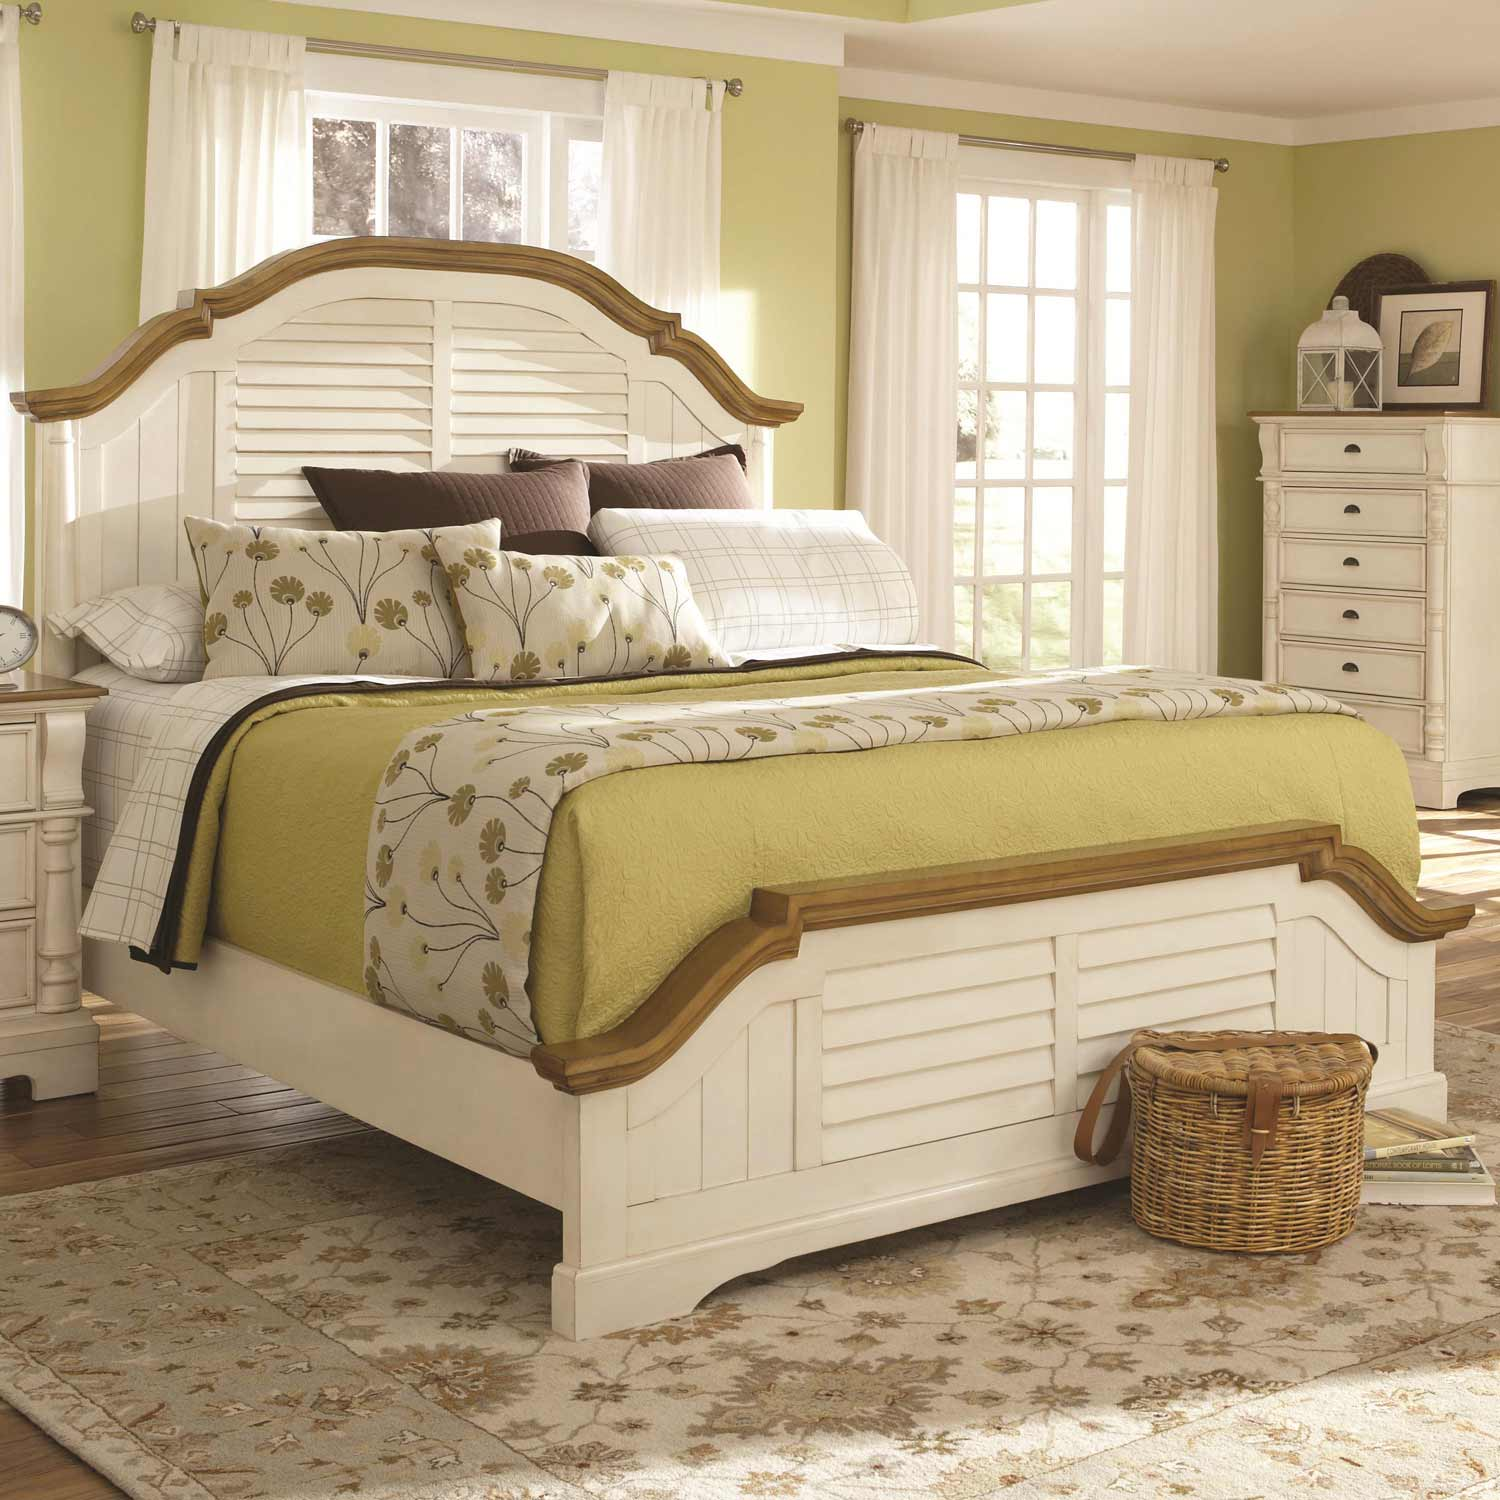 Coaster Oleta Bed - Buttermilk/Brown